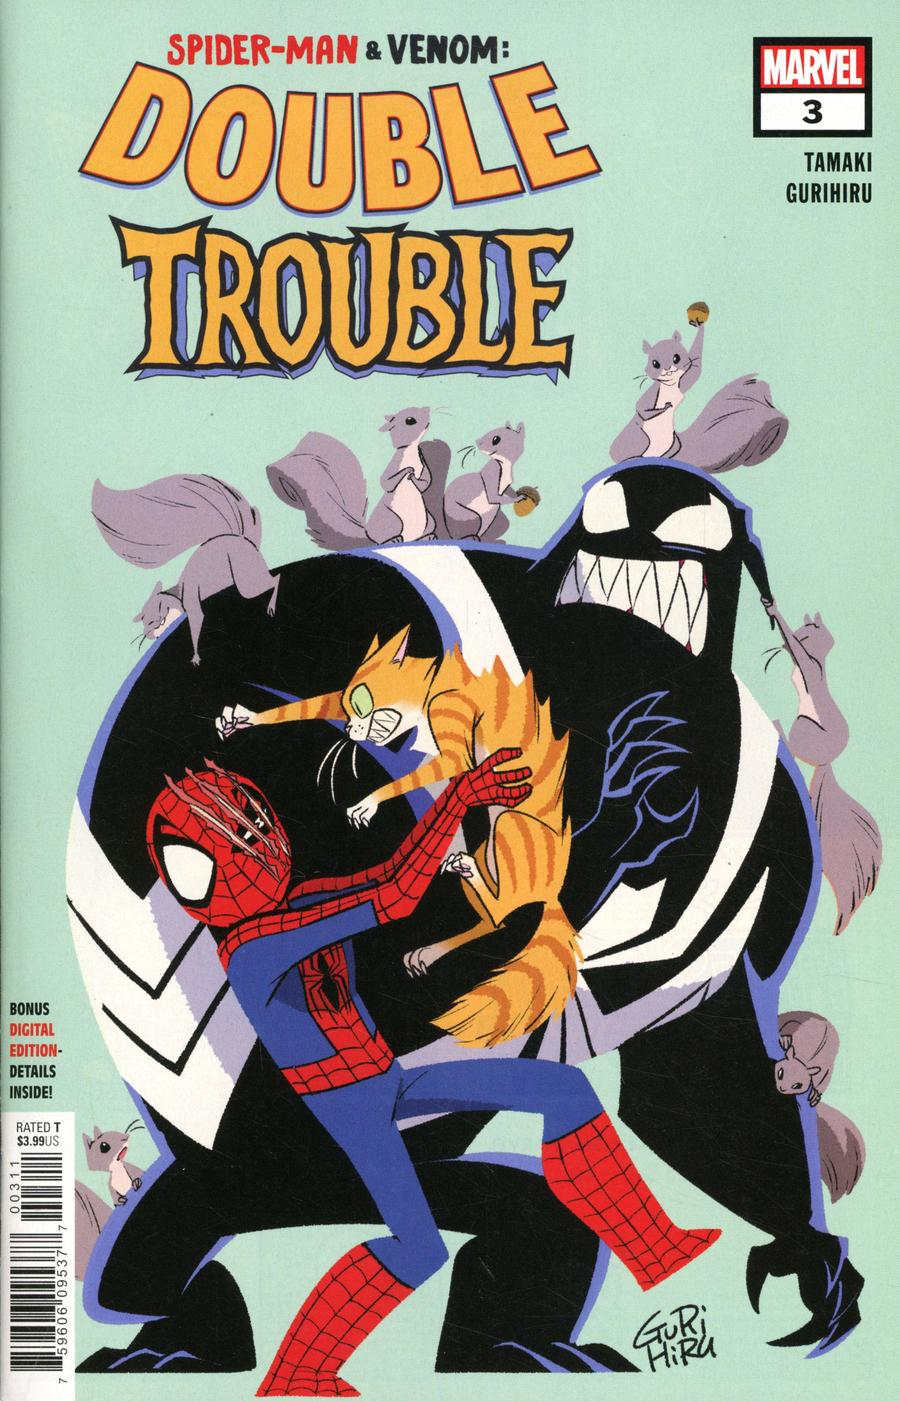 Spider-Man & Venom: Double Trouble #3 (2020)